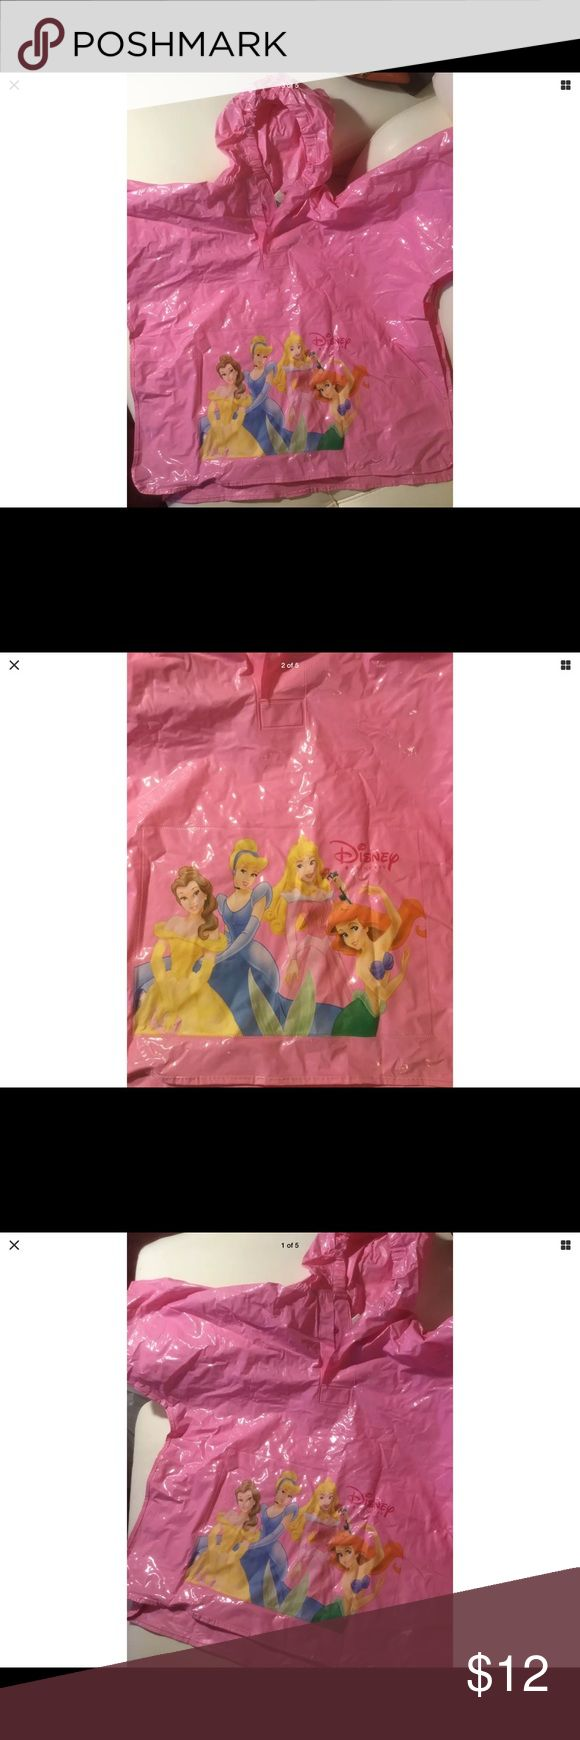 Princess PINK Raincoat Princess PINK Raincoat plastic poncho like cover for when the Princess cannot get wet!👸 Disney Jackets & Coats Utility Jackets